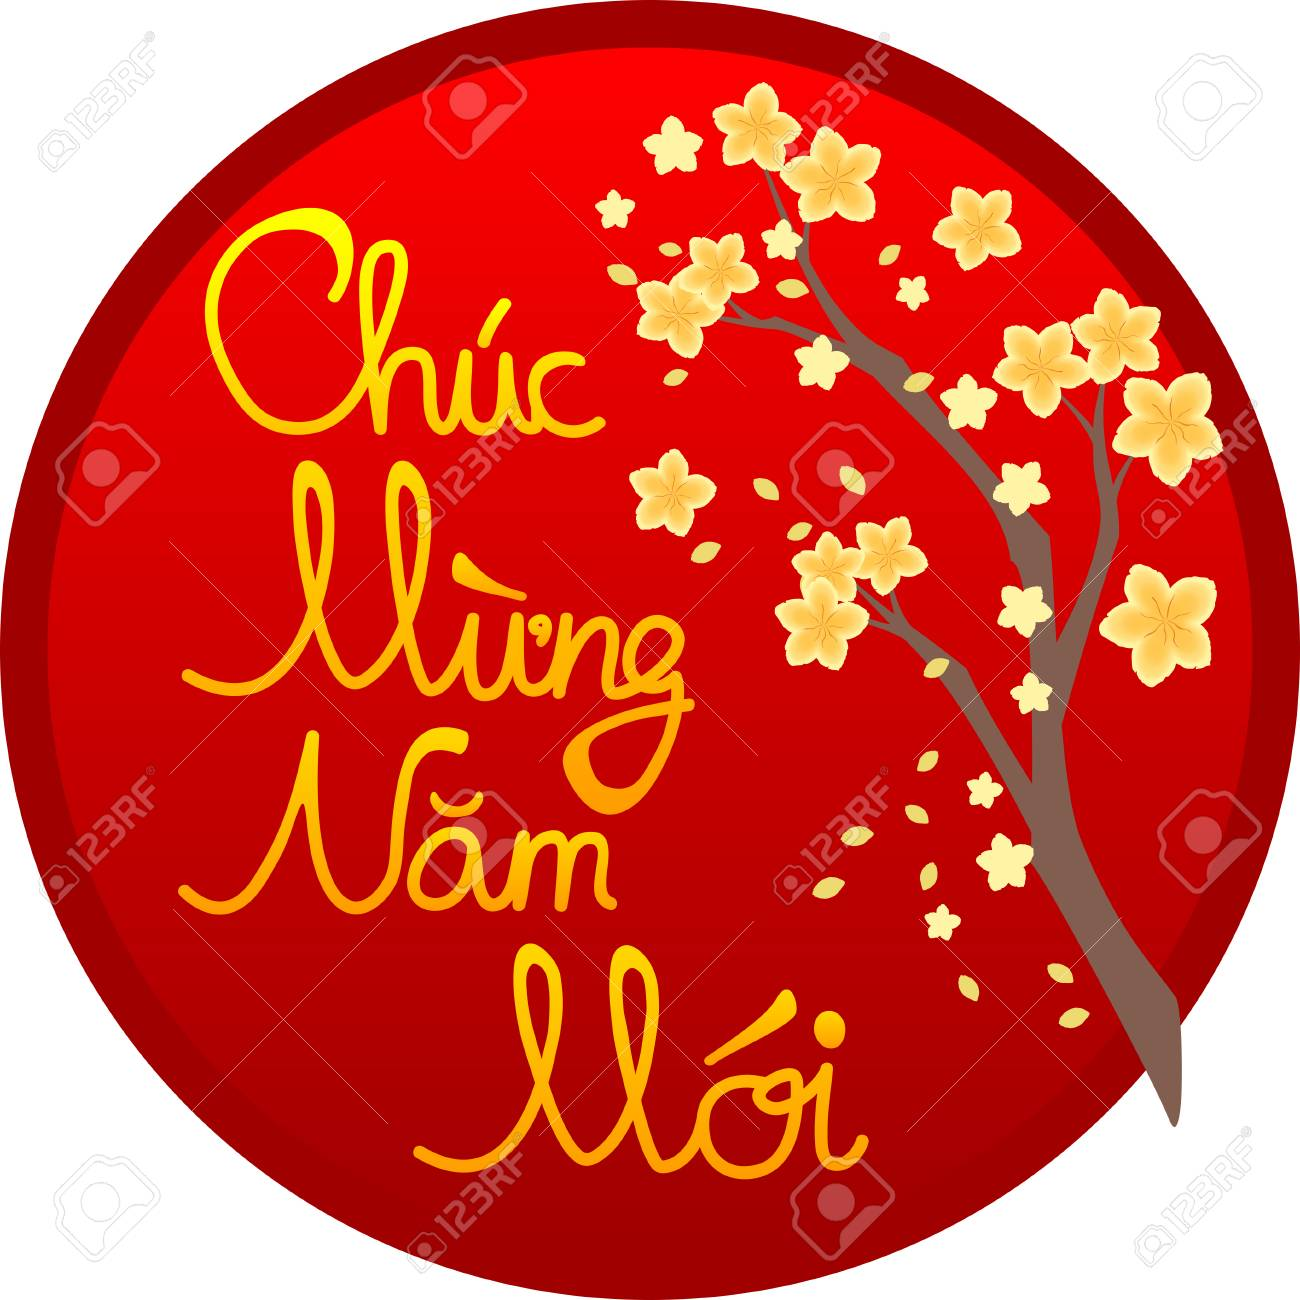 happy new year chuc mung nam moi in vietnamese wishing message with hoa